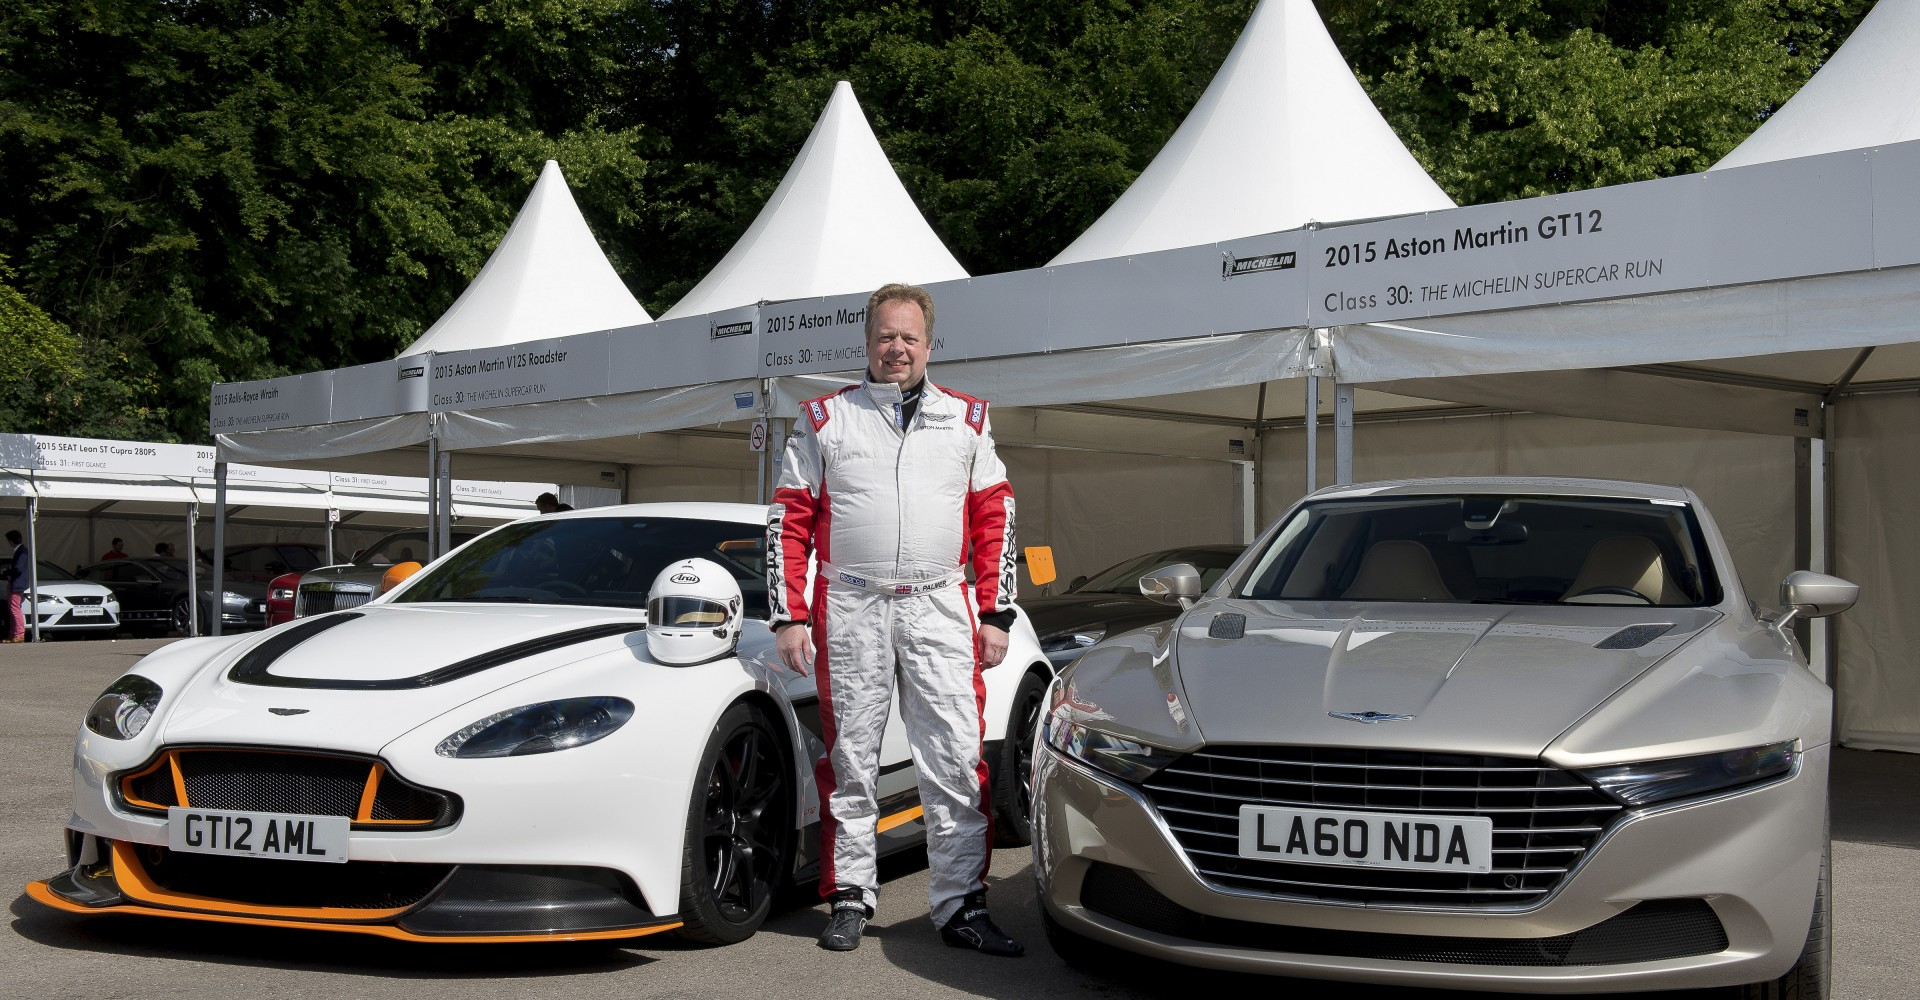 Exclusive: Aston Martin Boss Writes Off Supercar During Record Attempt